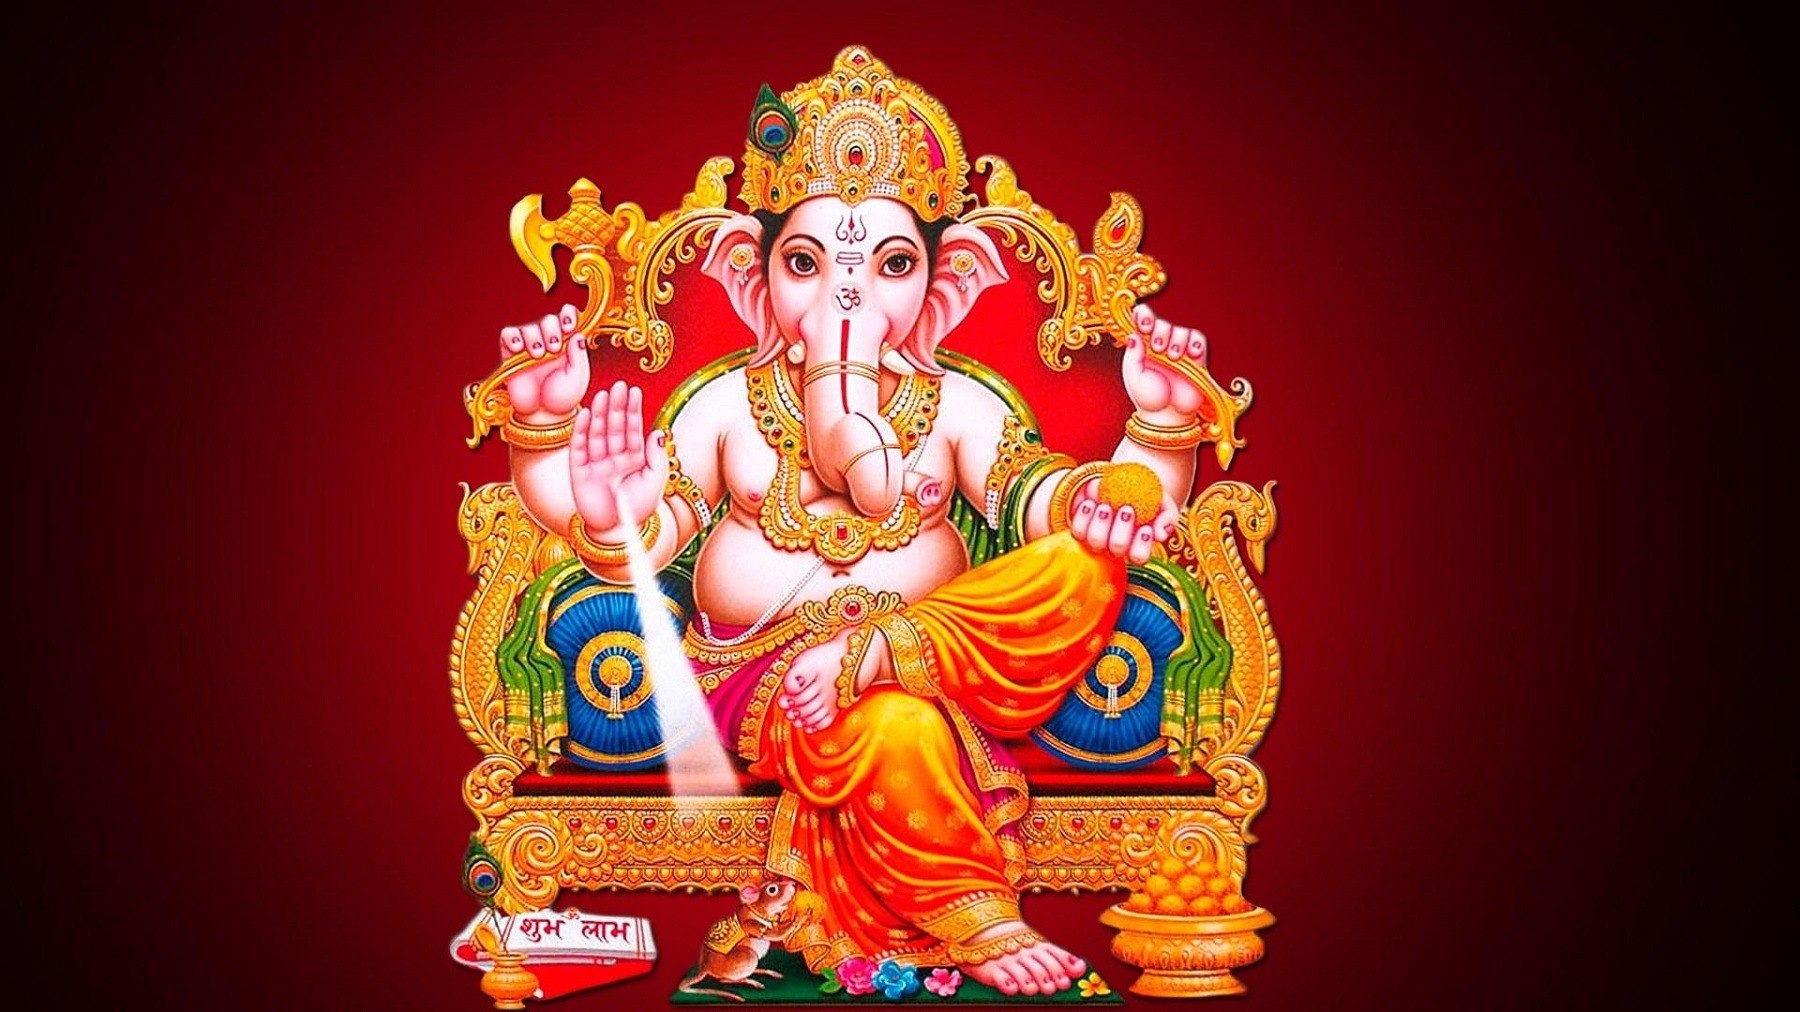 Download - Ganesh Chaturthi Wallpapers_5